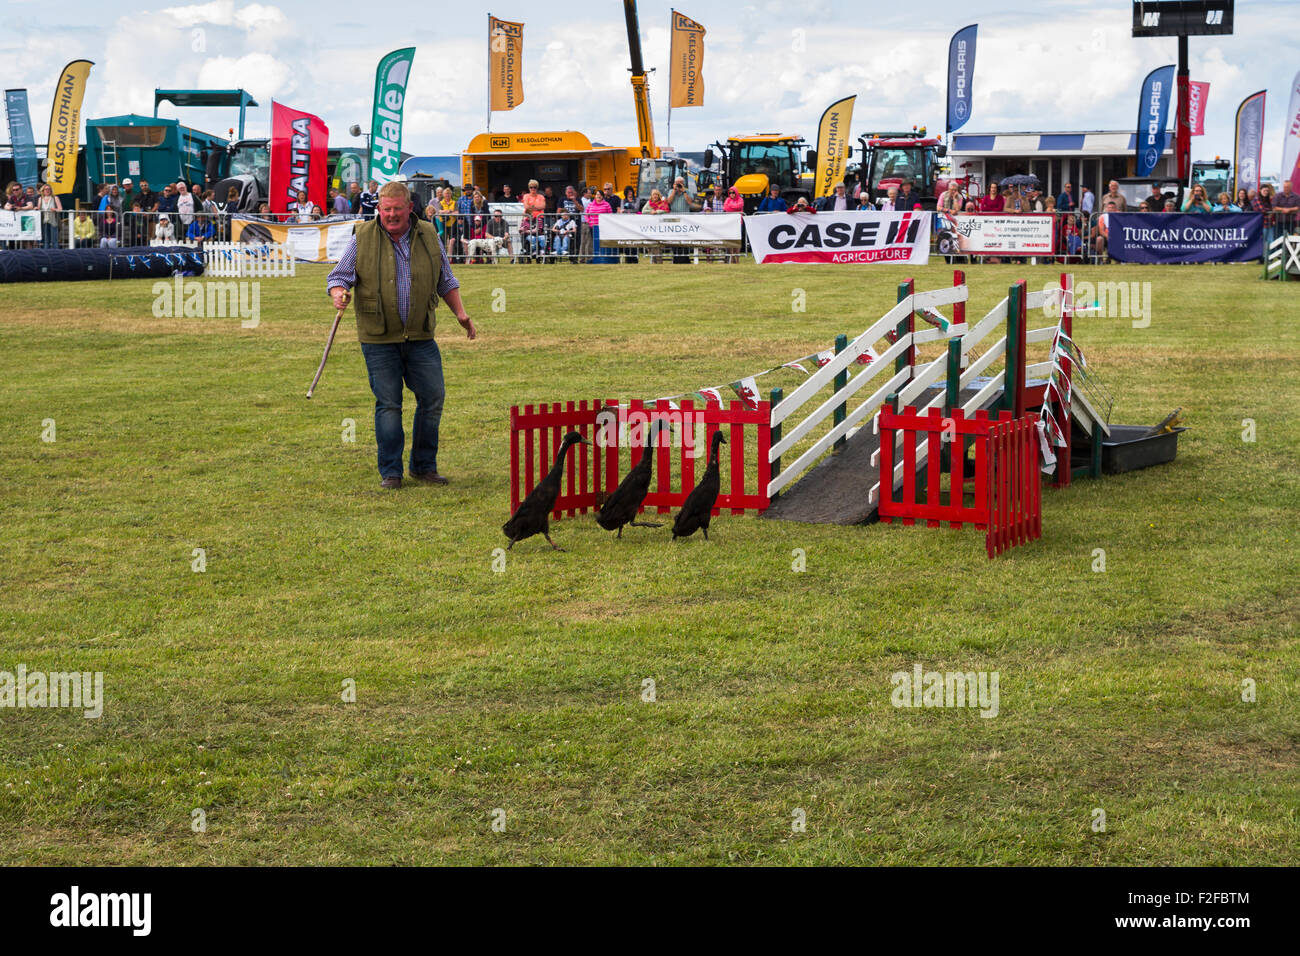 Quack Commandos display at the 2015 Haddington Show - Stock Image